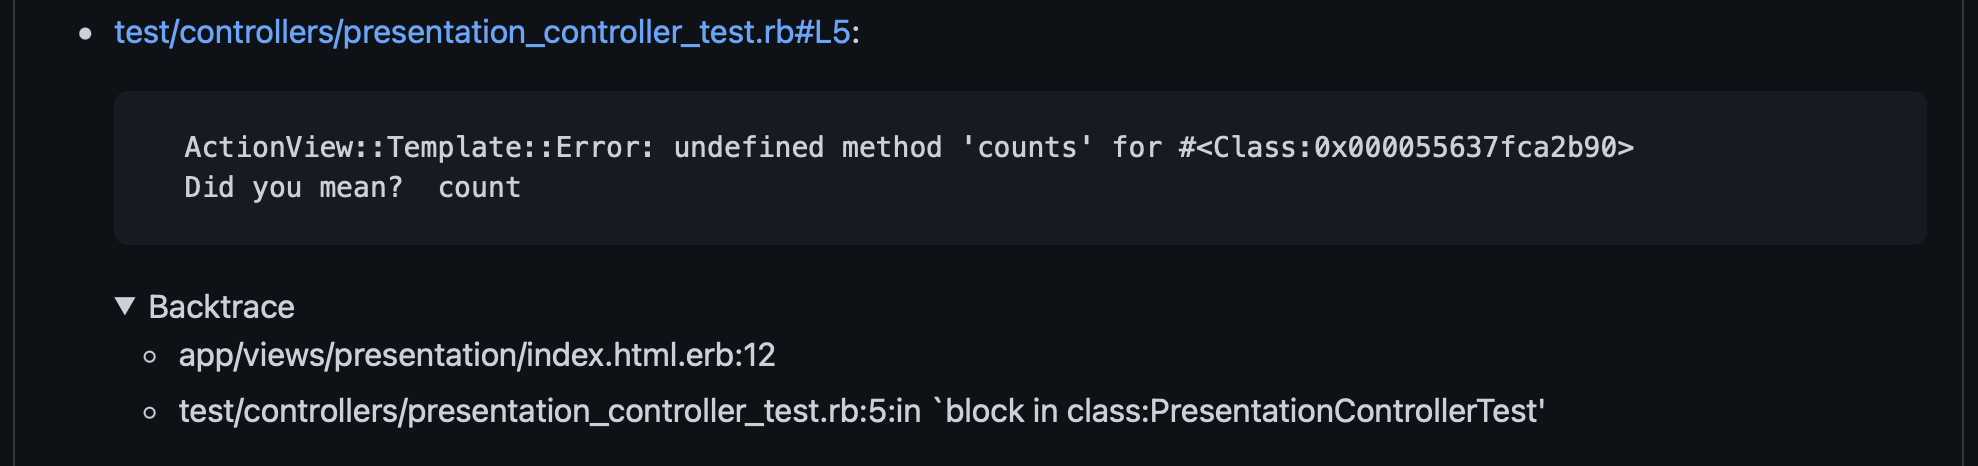 Screenshot of test backtrace included in comment on Github pull request.